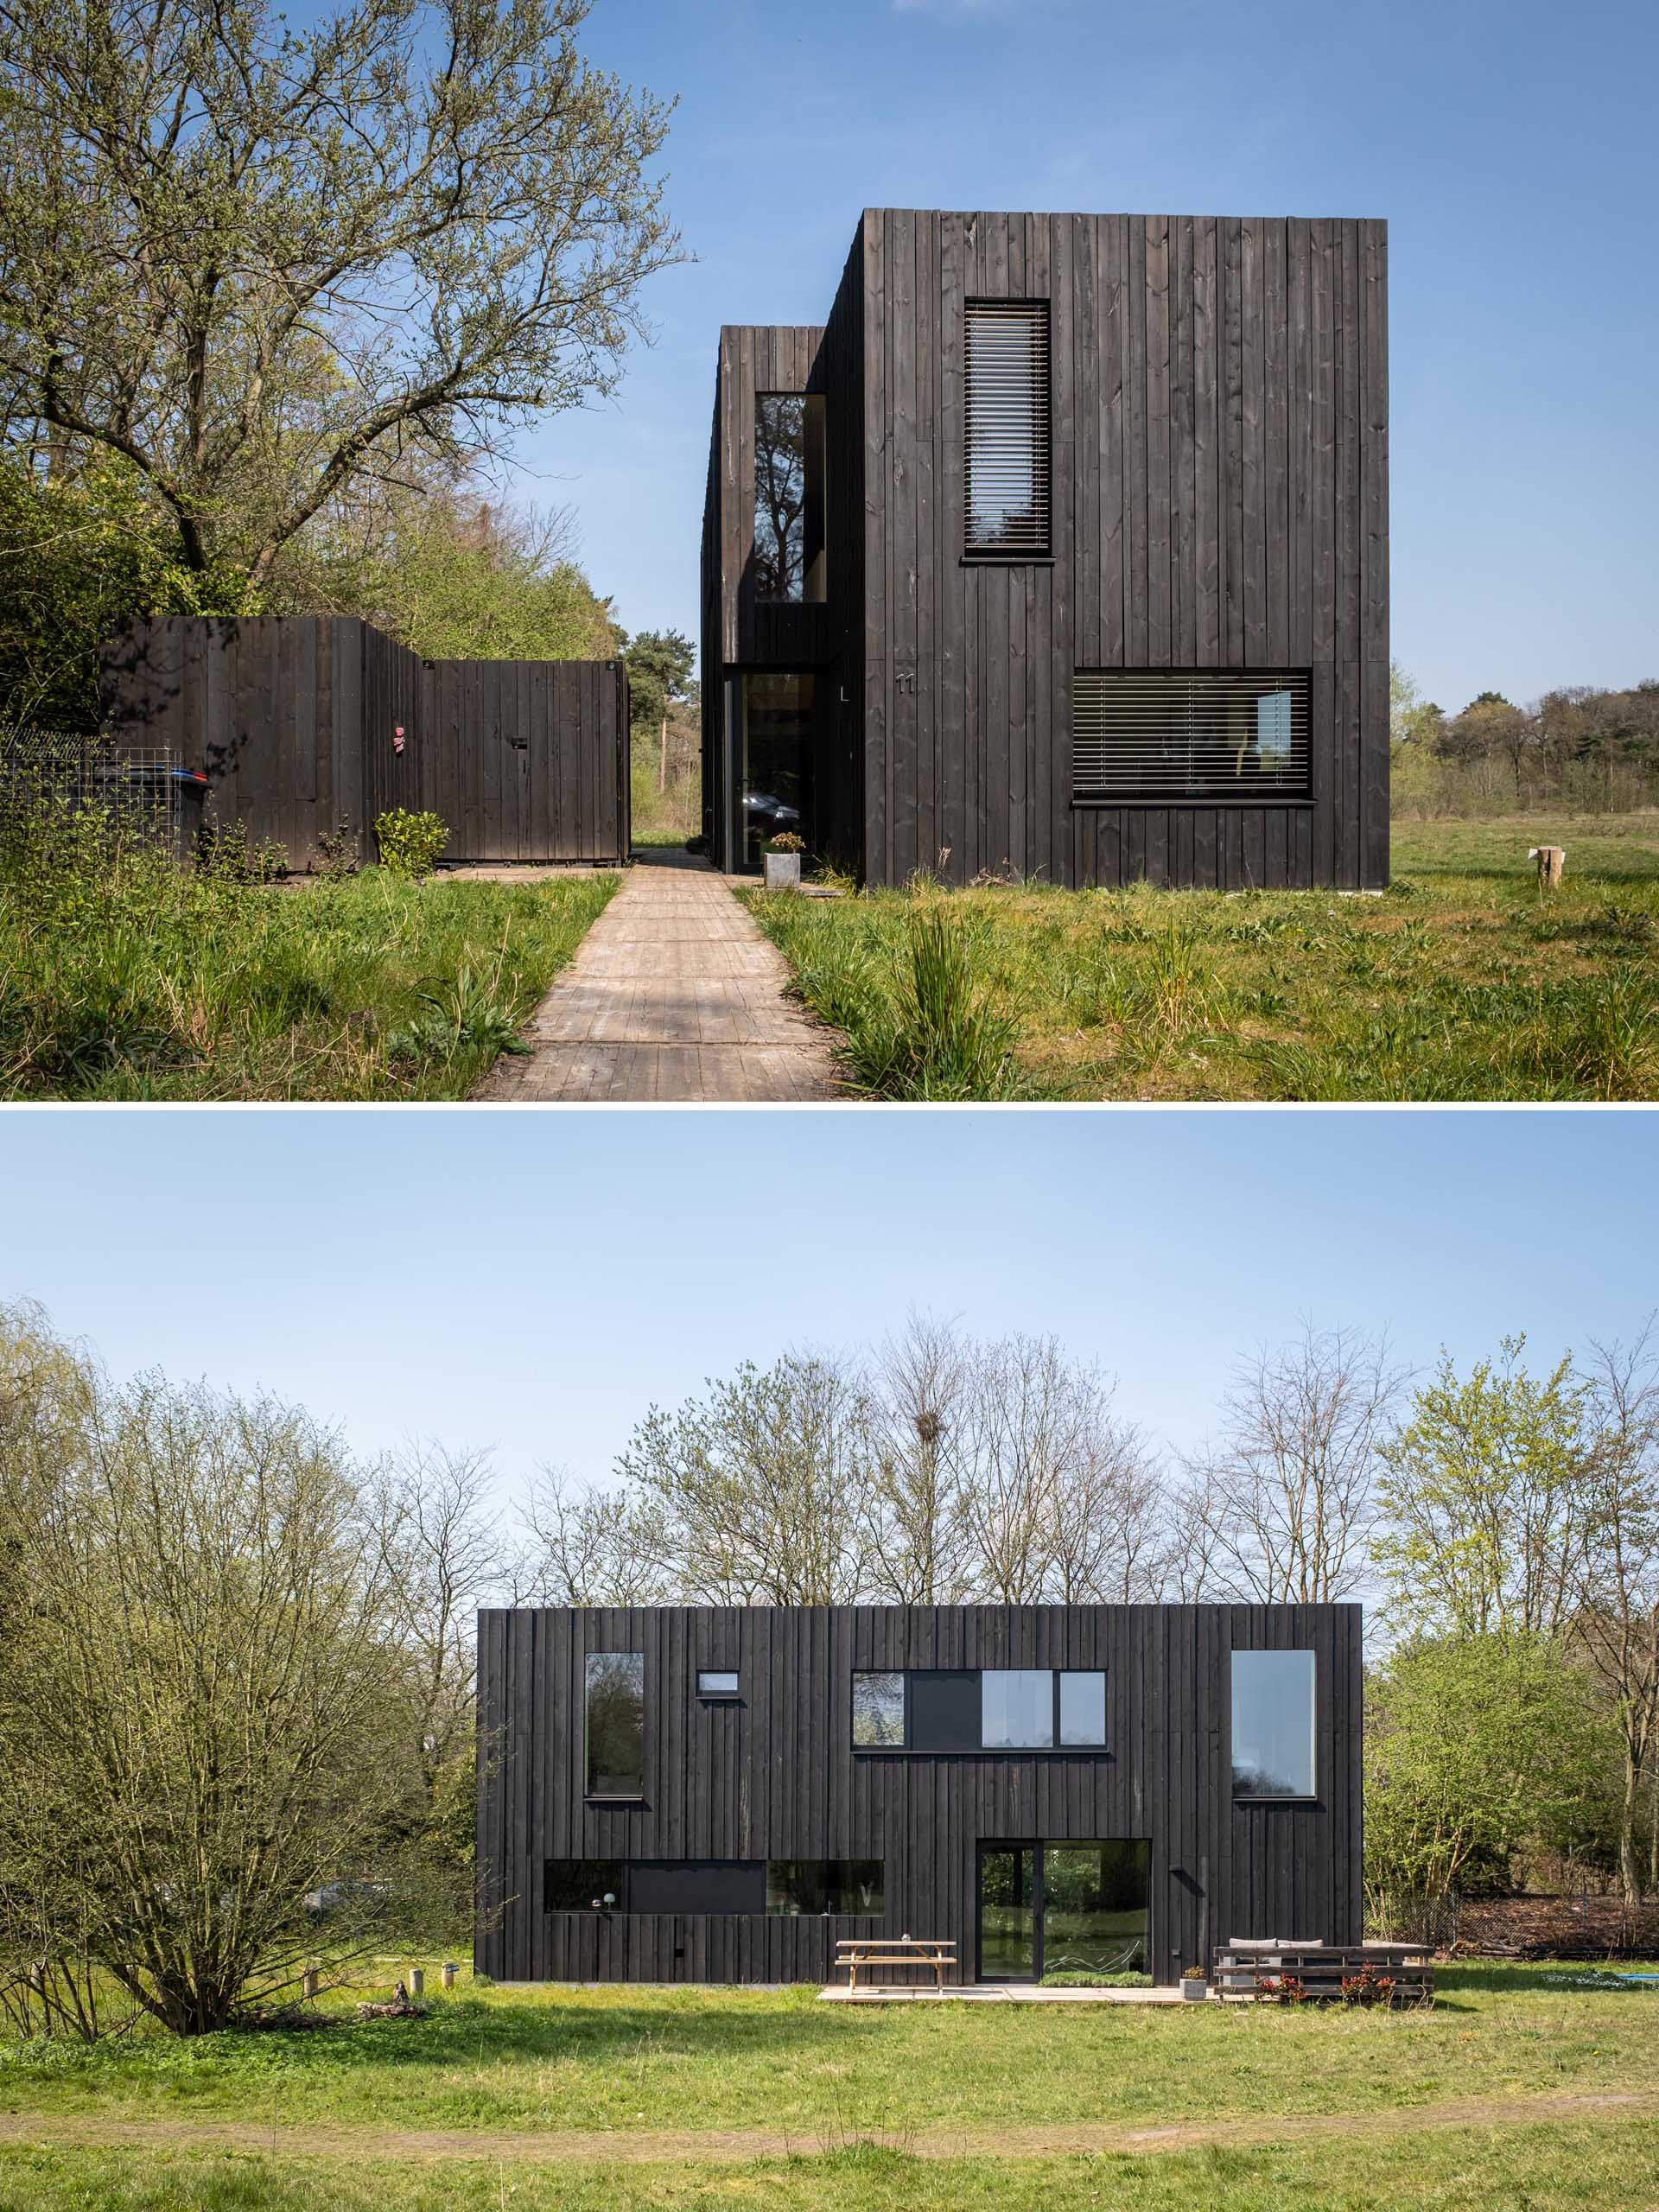 A modern prefab home with black wood siding, black window frames, and a separate shed.